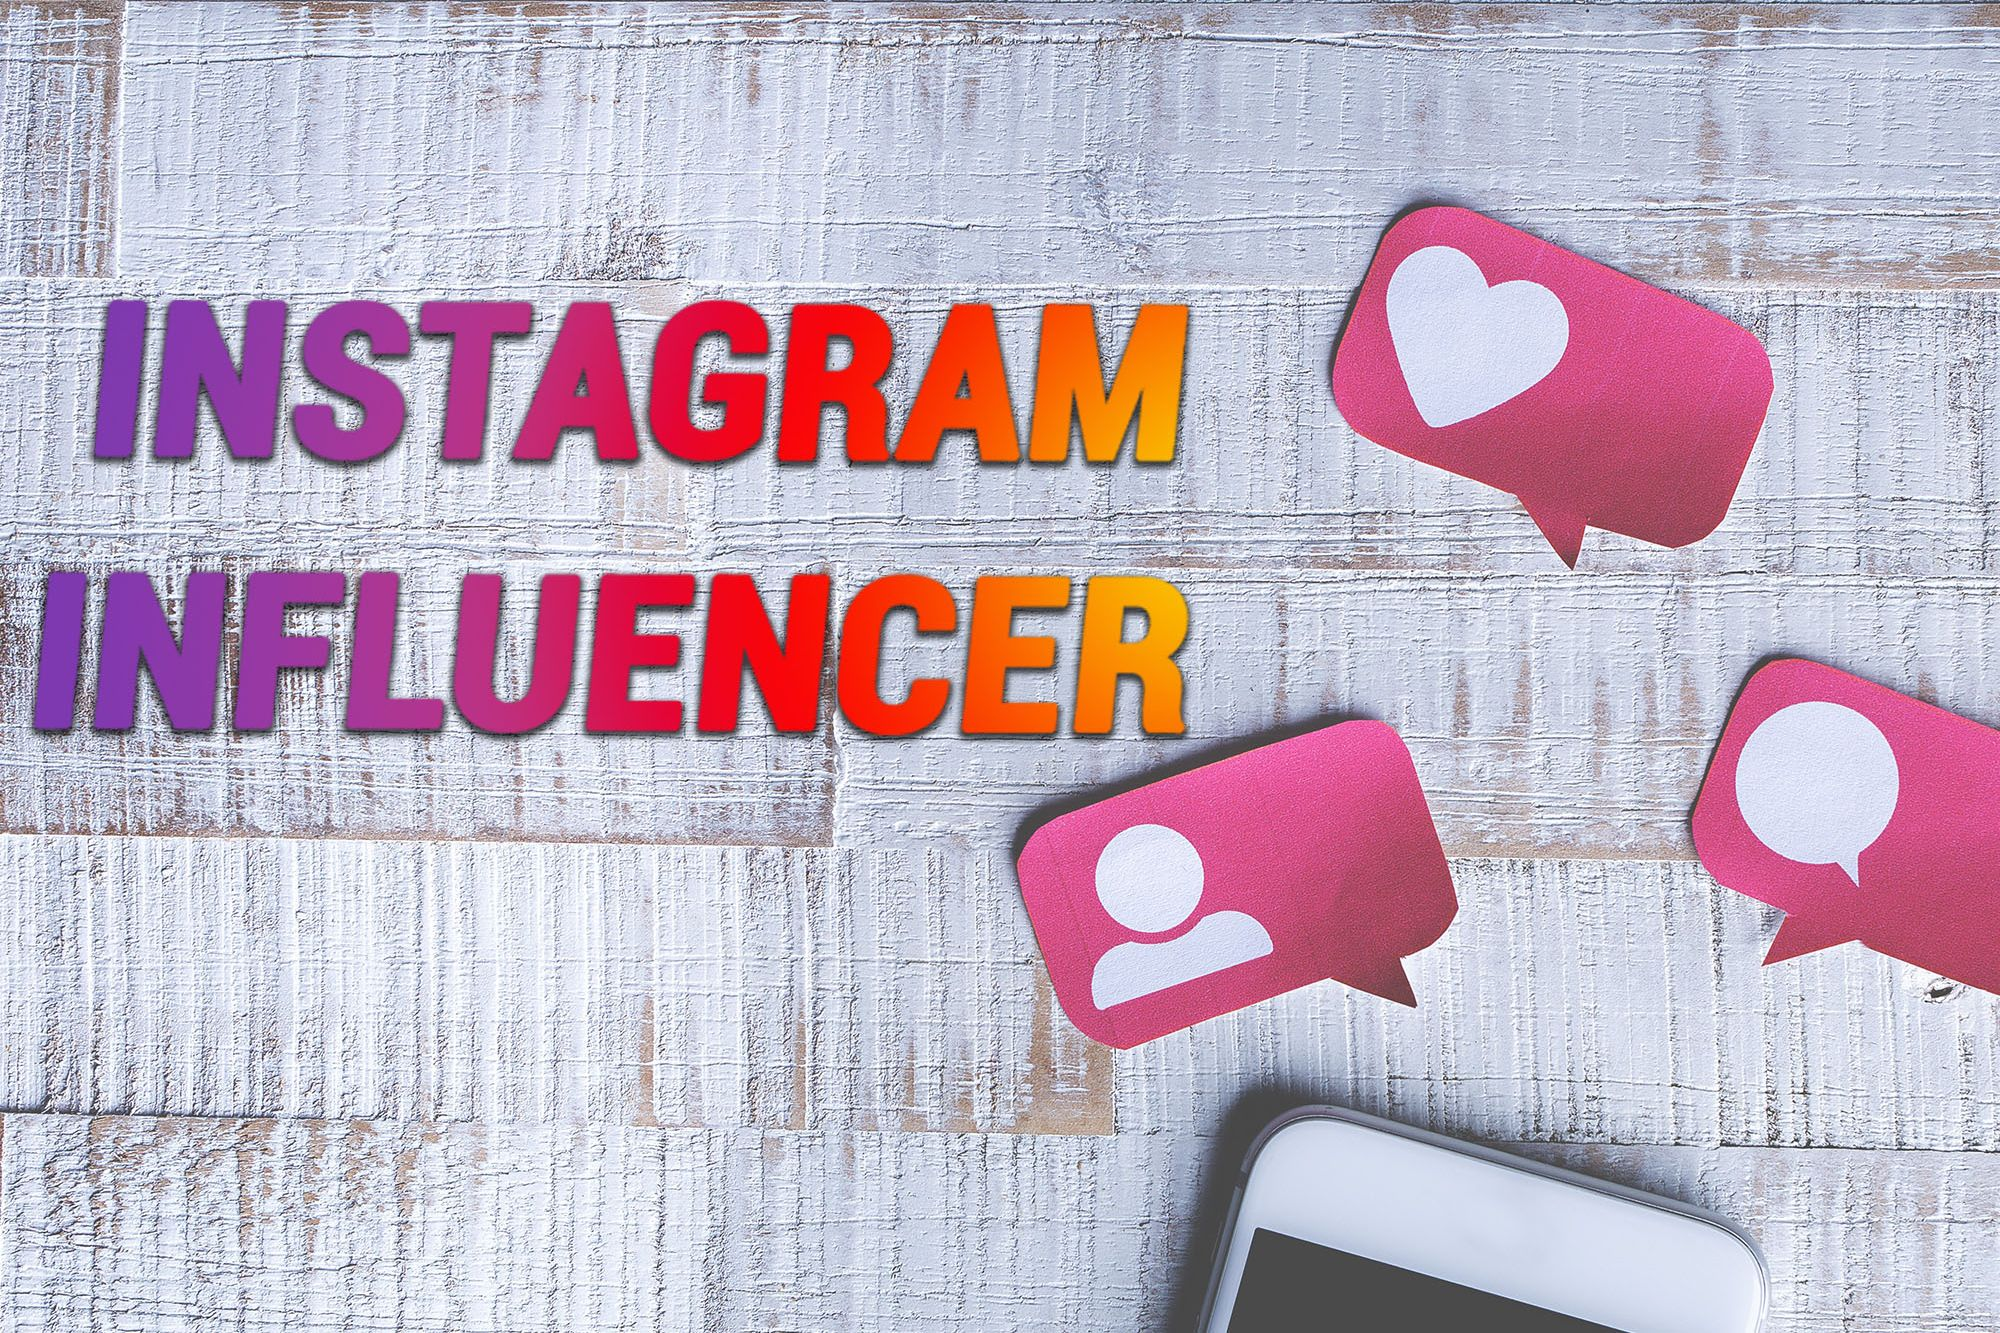 How Does The Marketing Agency Use Influencer On Instagram For Advertising